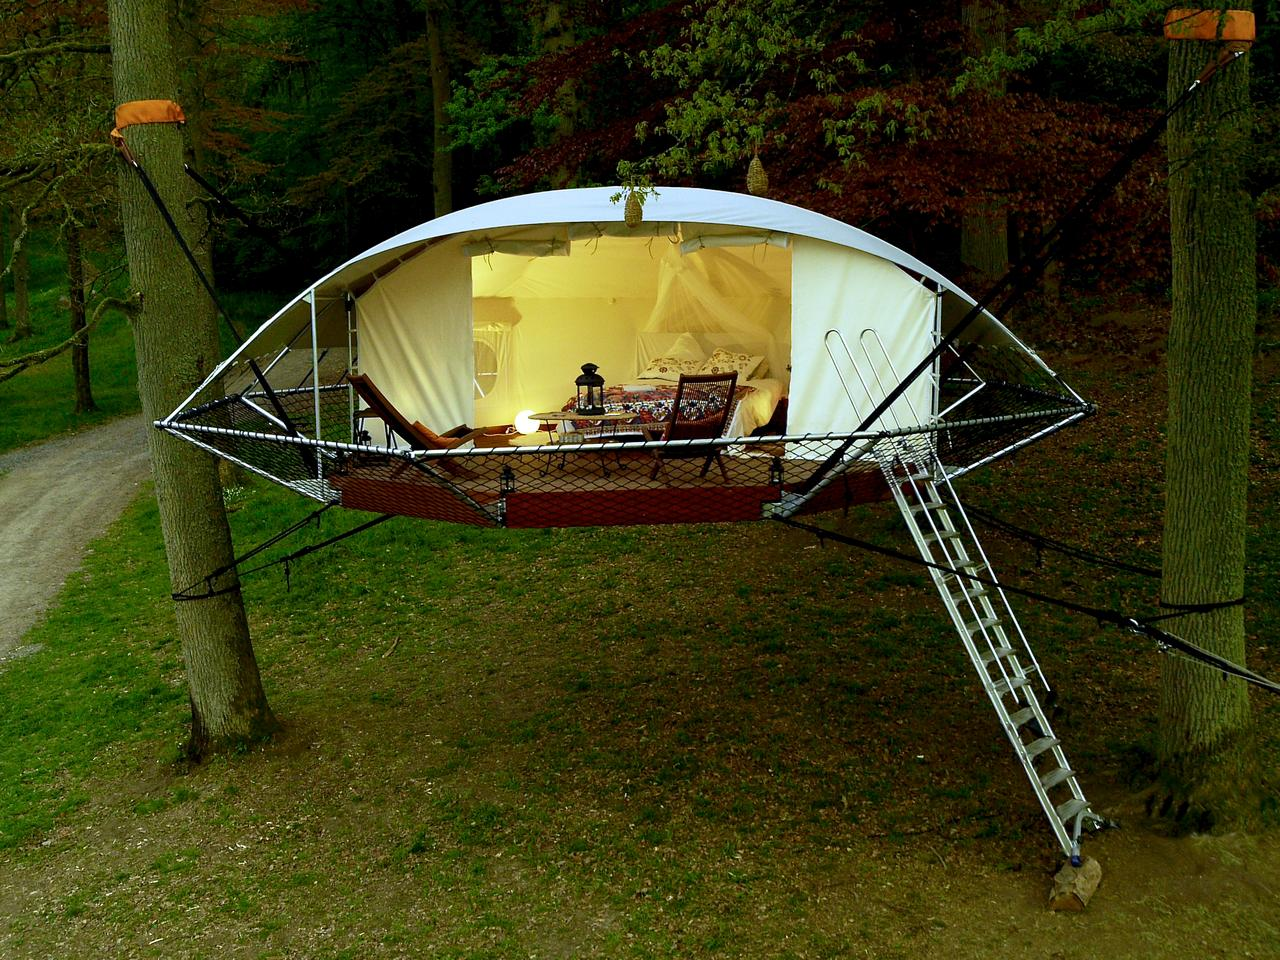 Dutch arboriculturist Bruno de Grunne and architect Nicolas d'Ursel from Trees and People have invented a new suspension style cabin called Dom'Up